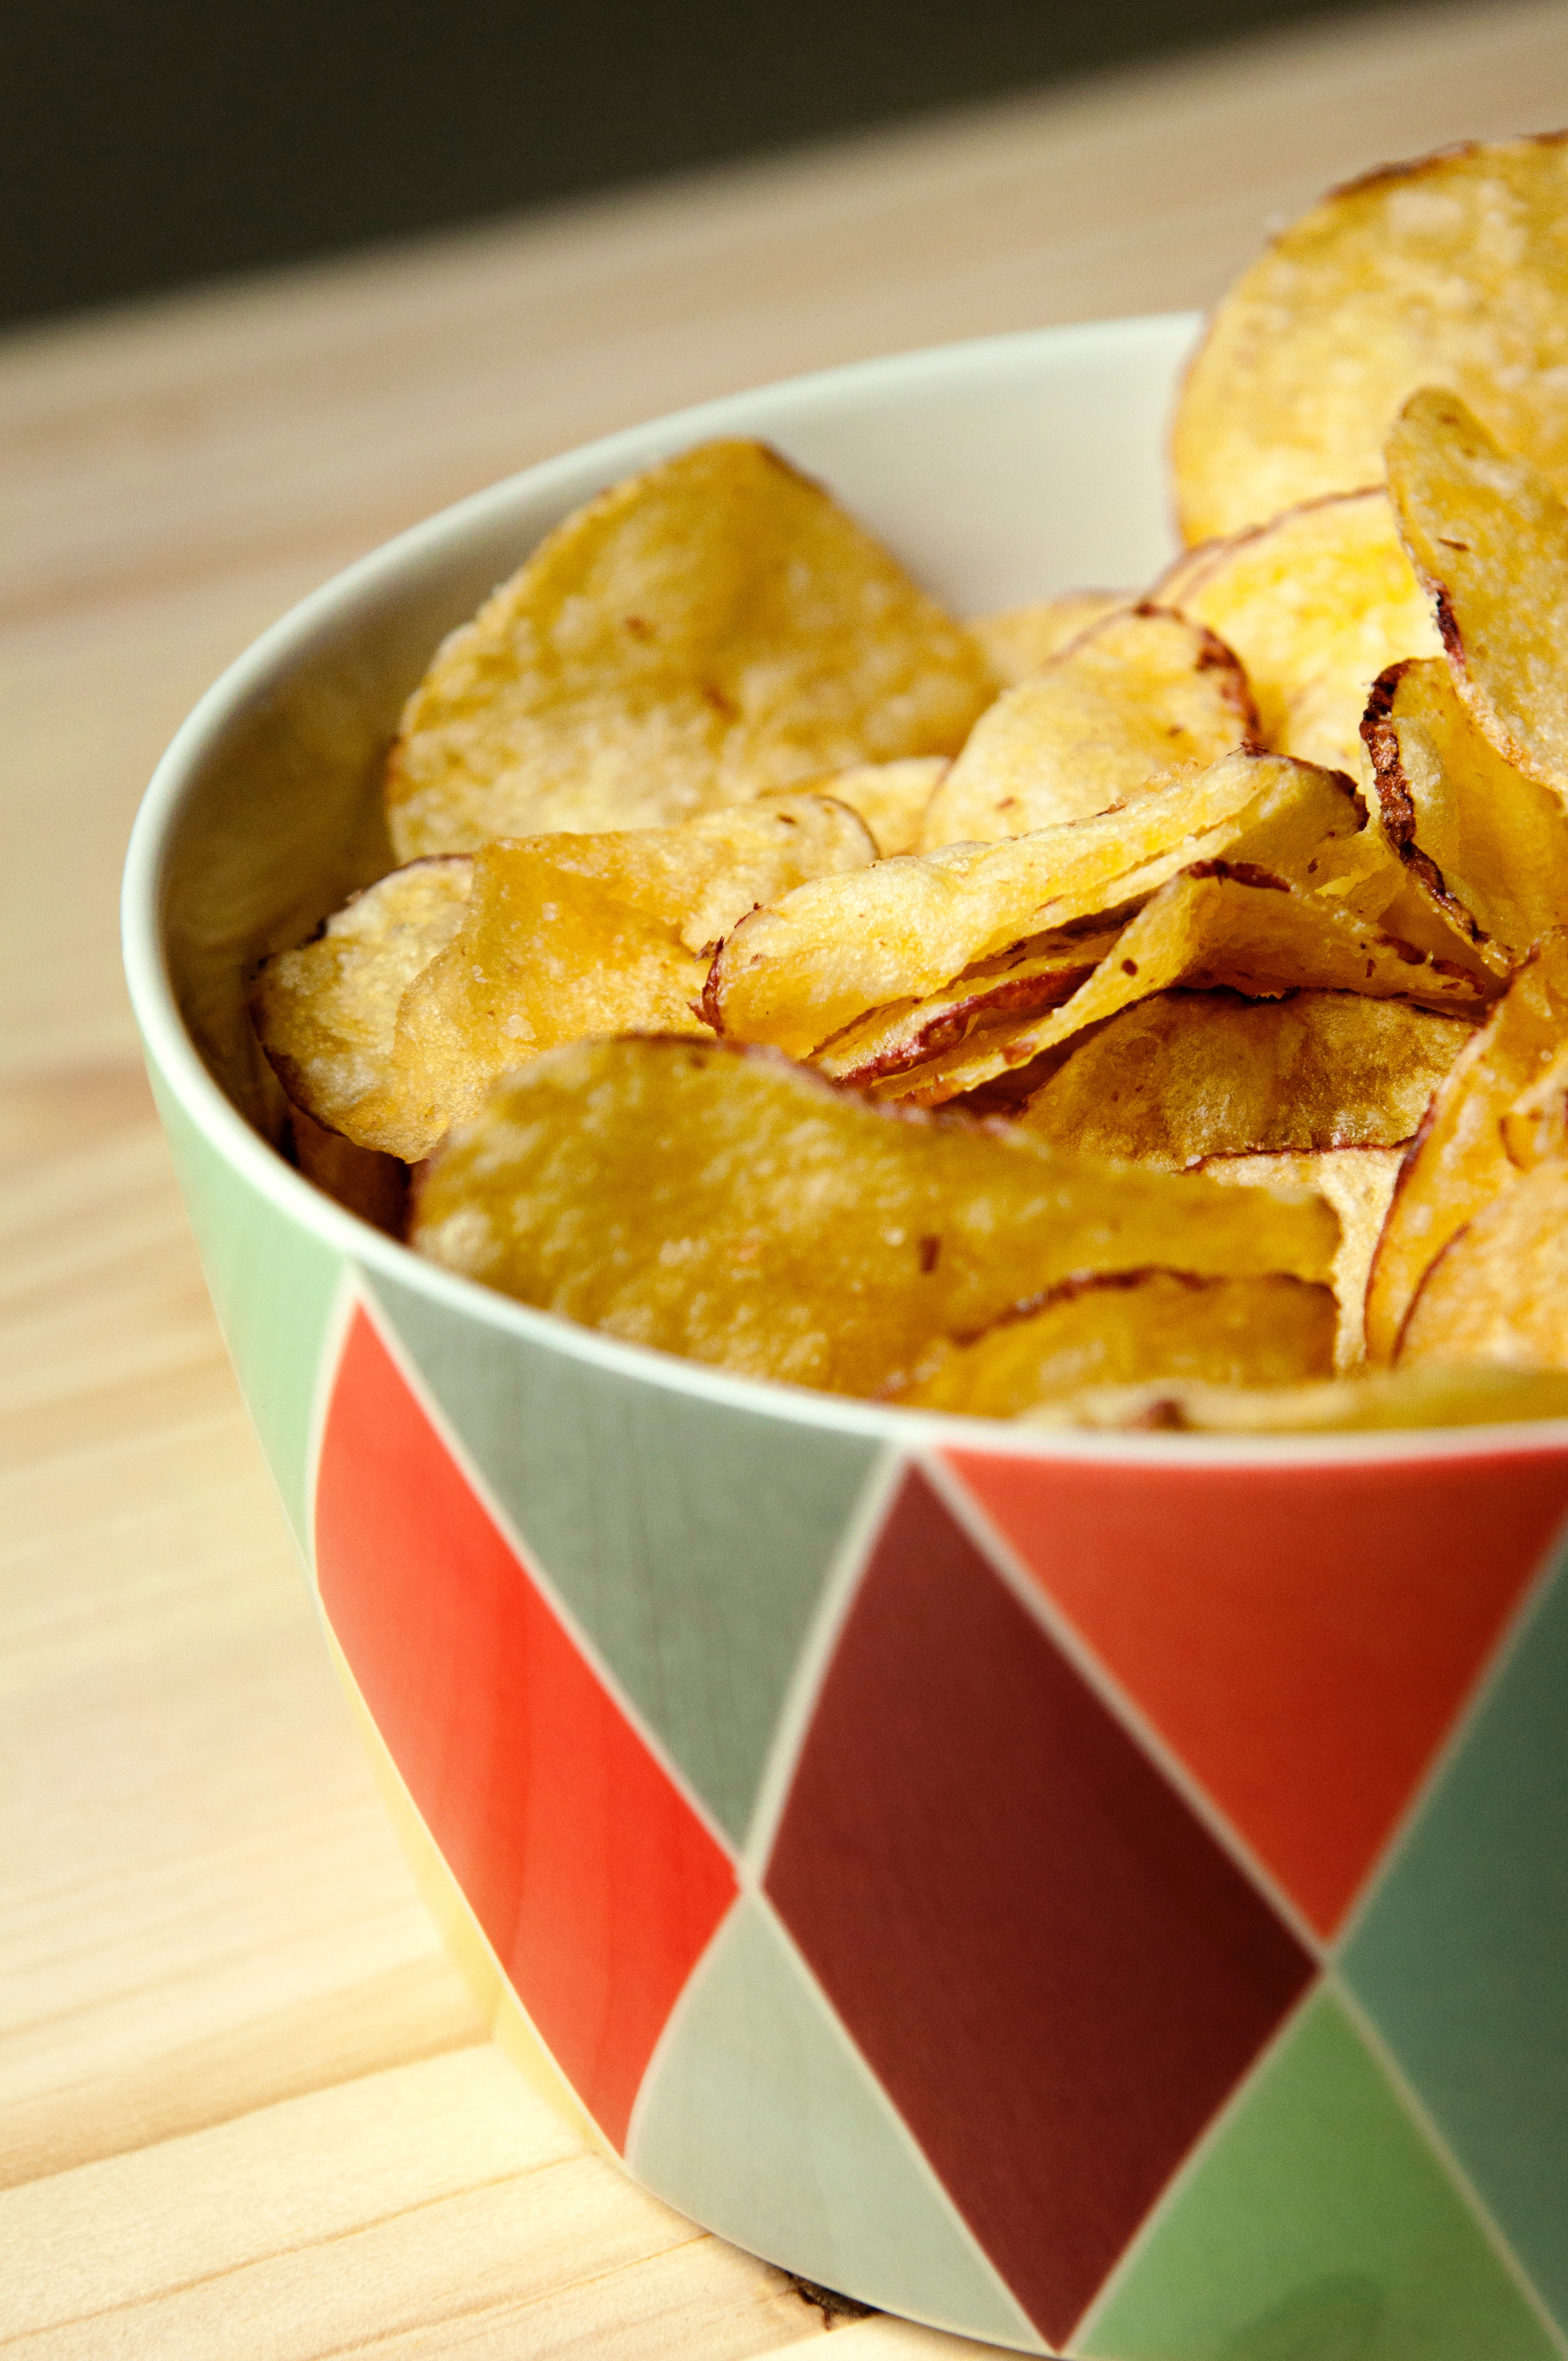 What Foods to Avoid if You Are Prone to Cavities